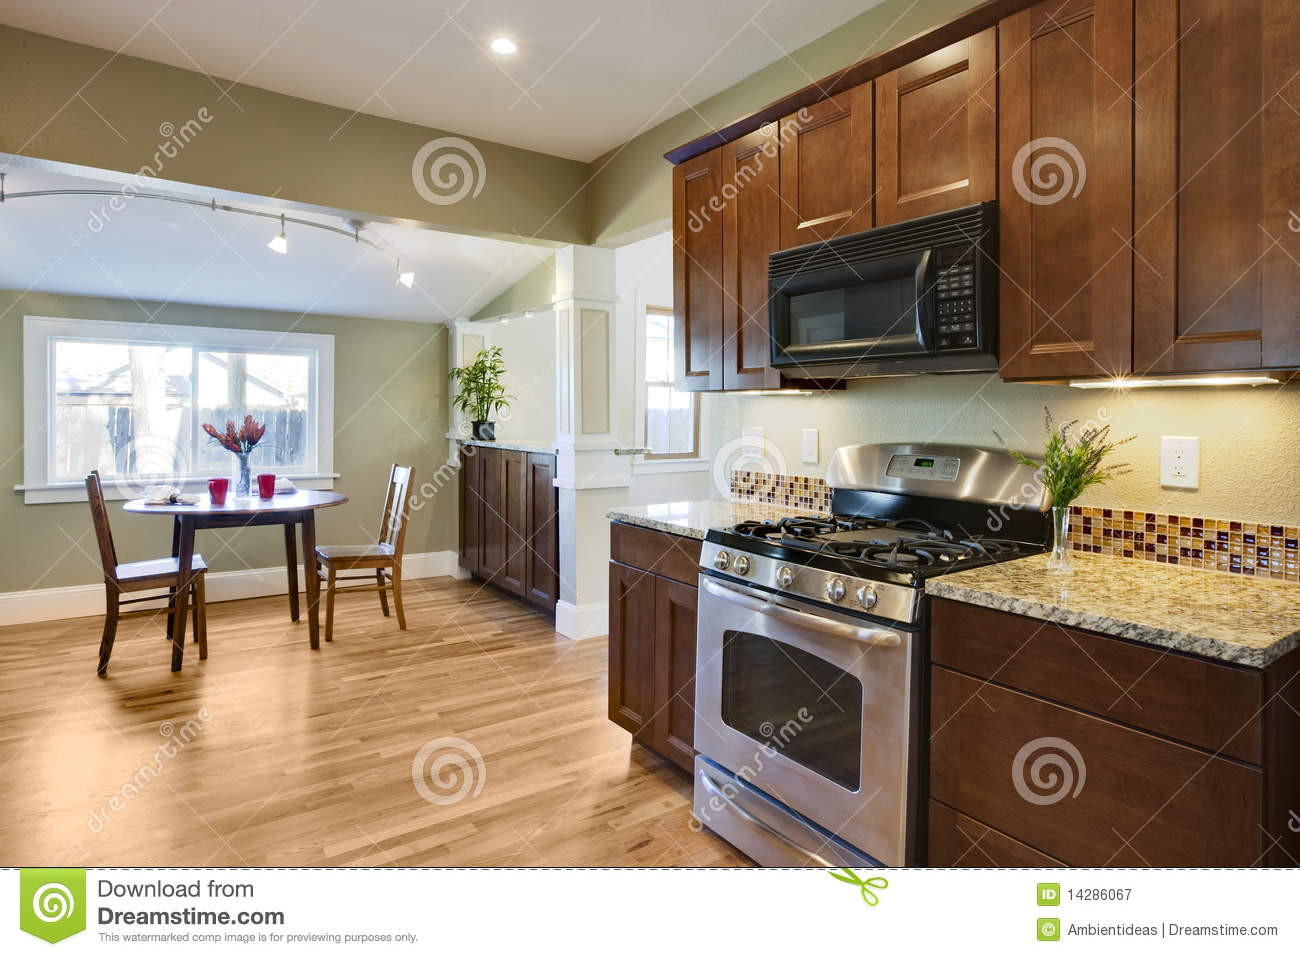 remodel kitchen with wood flooring remodel kitchen with oven granite